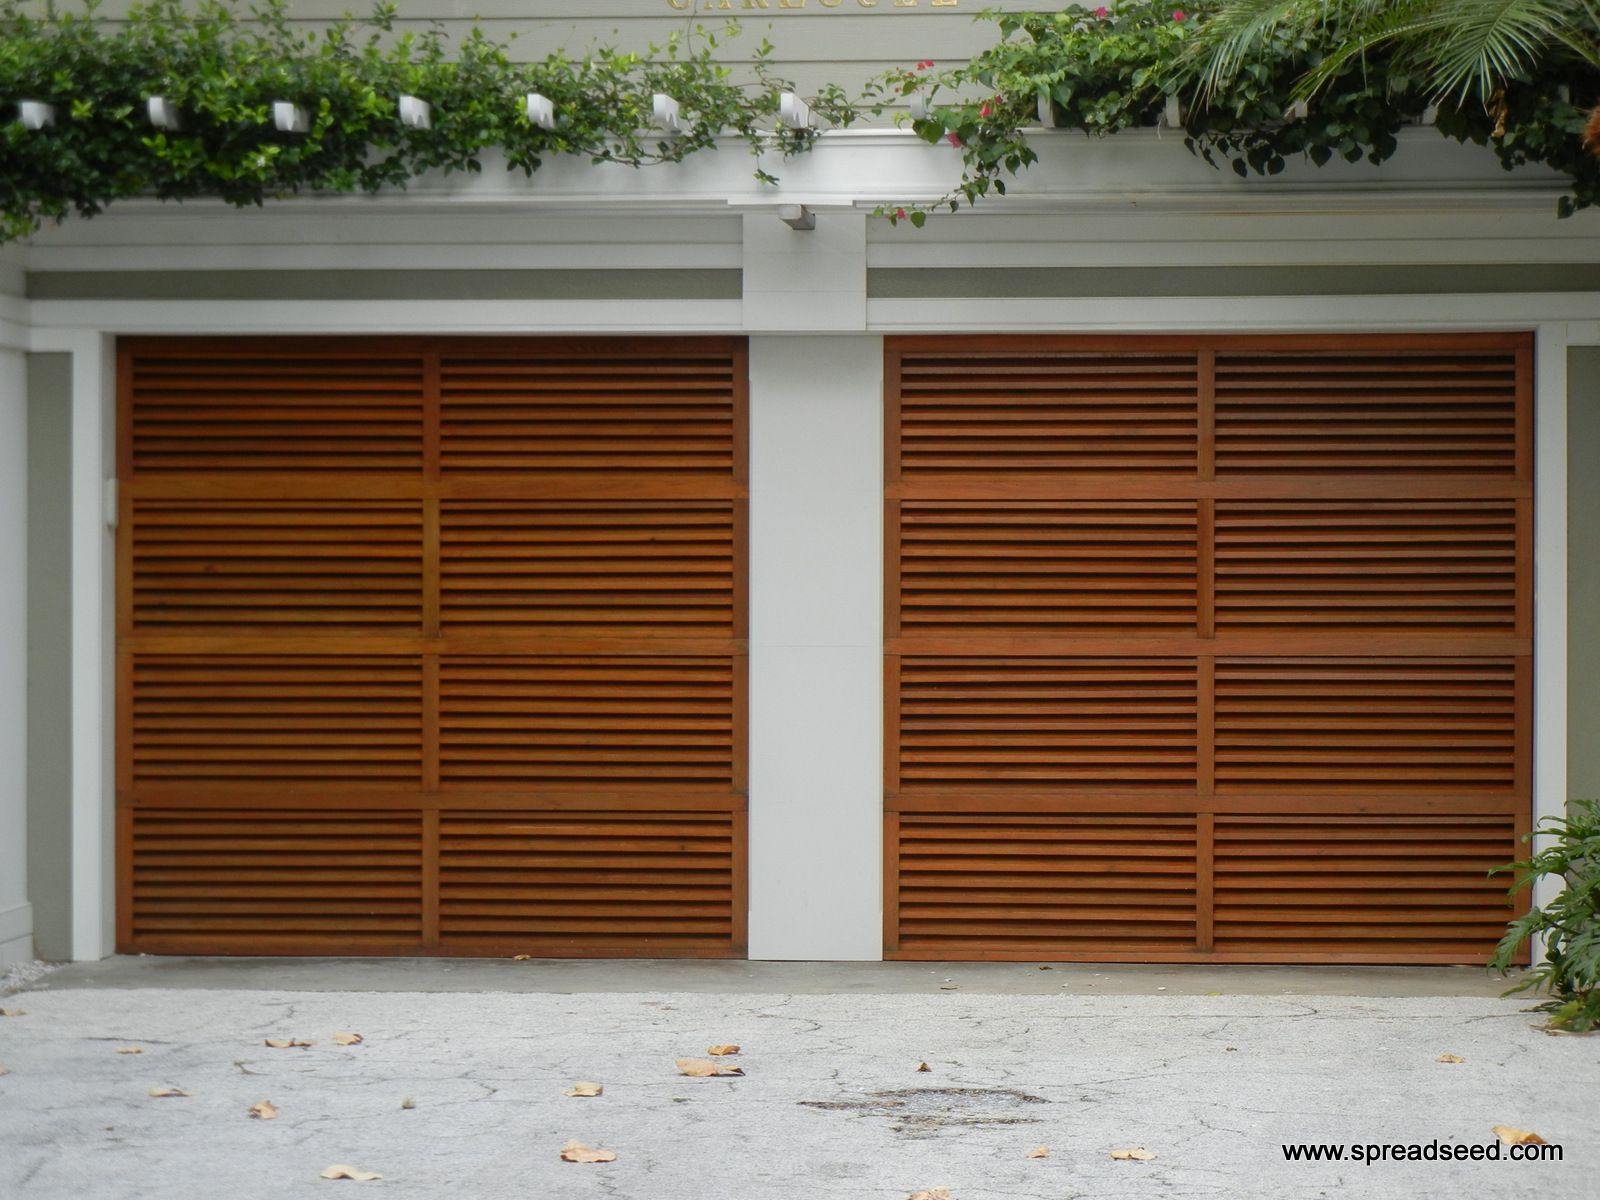 Teak Garage Door For Miami Beach Residence